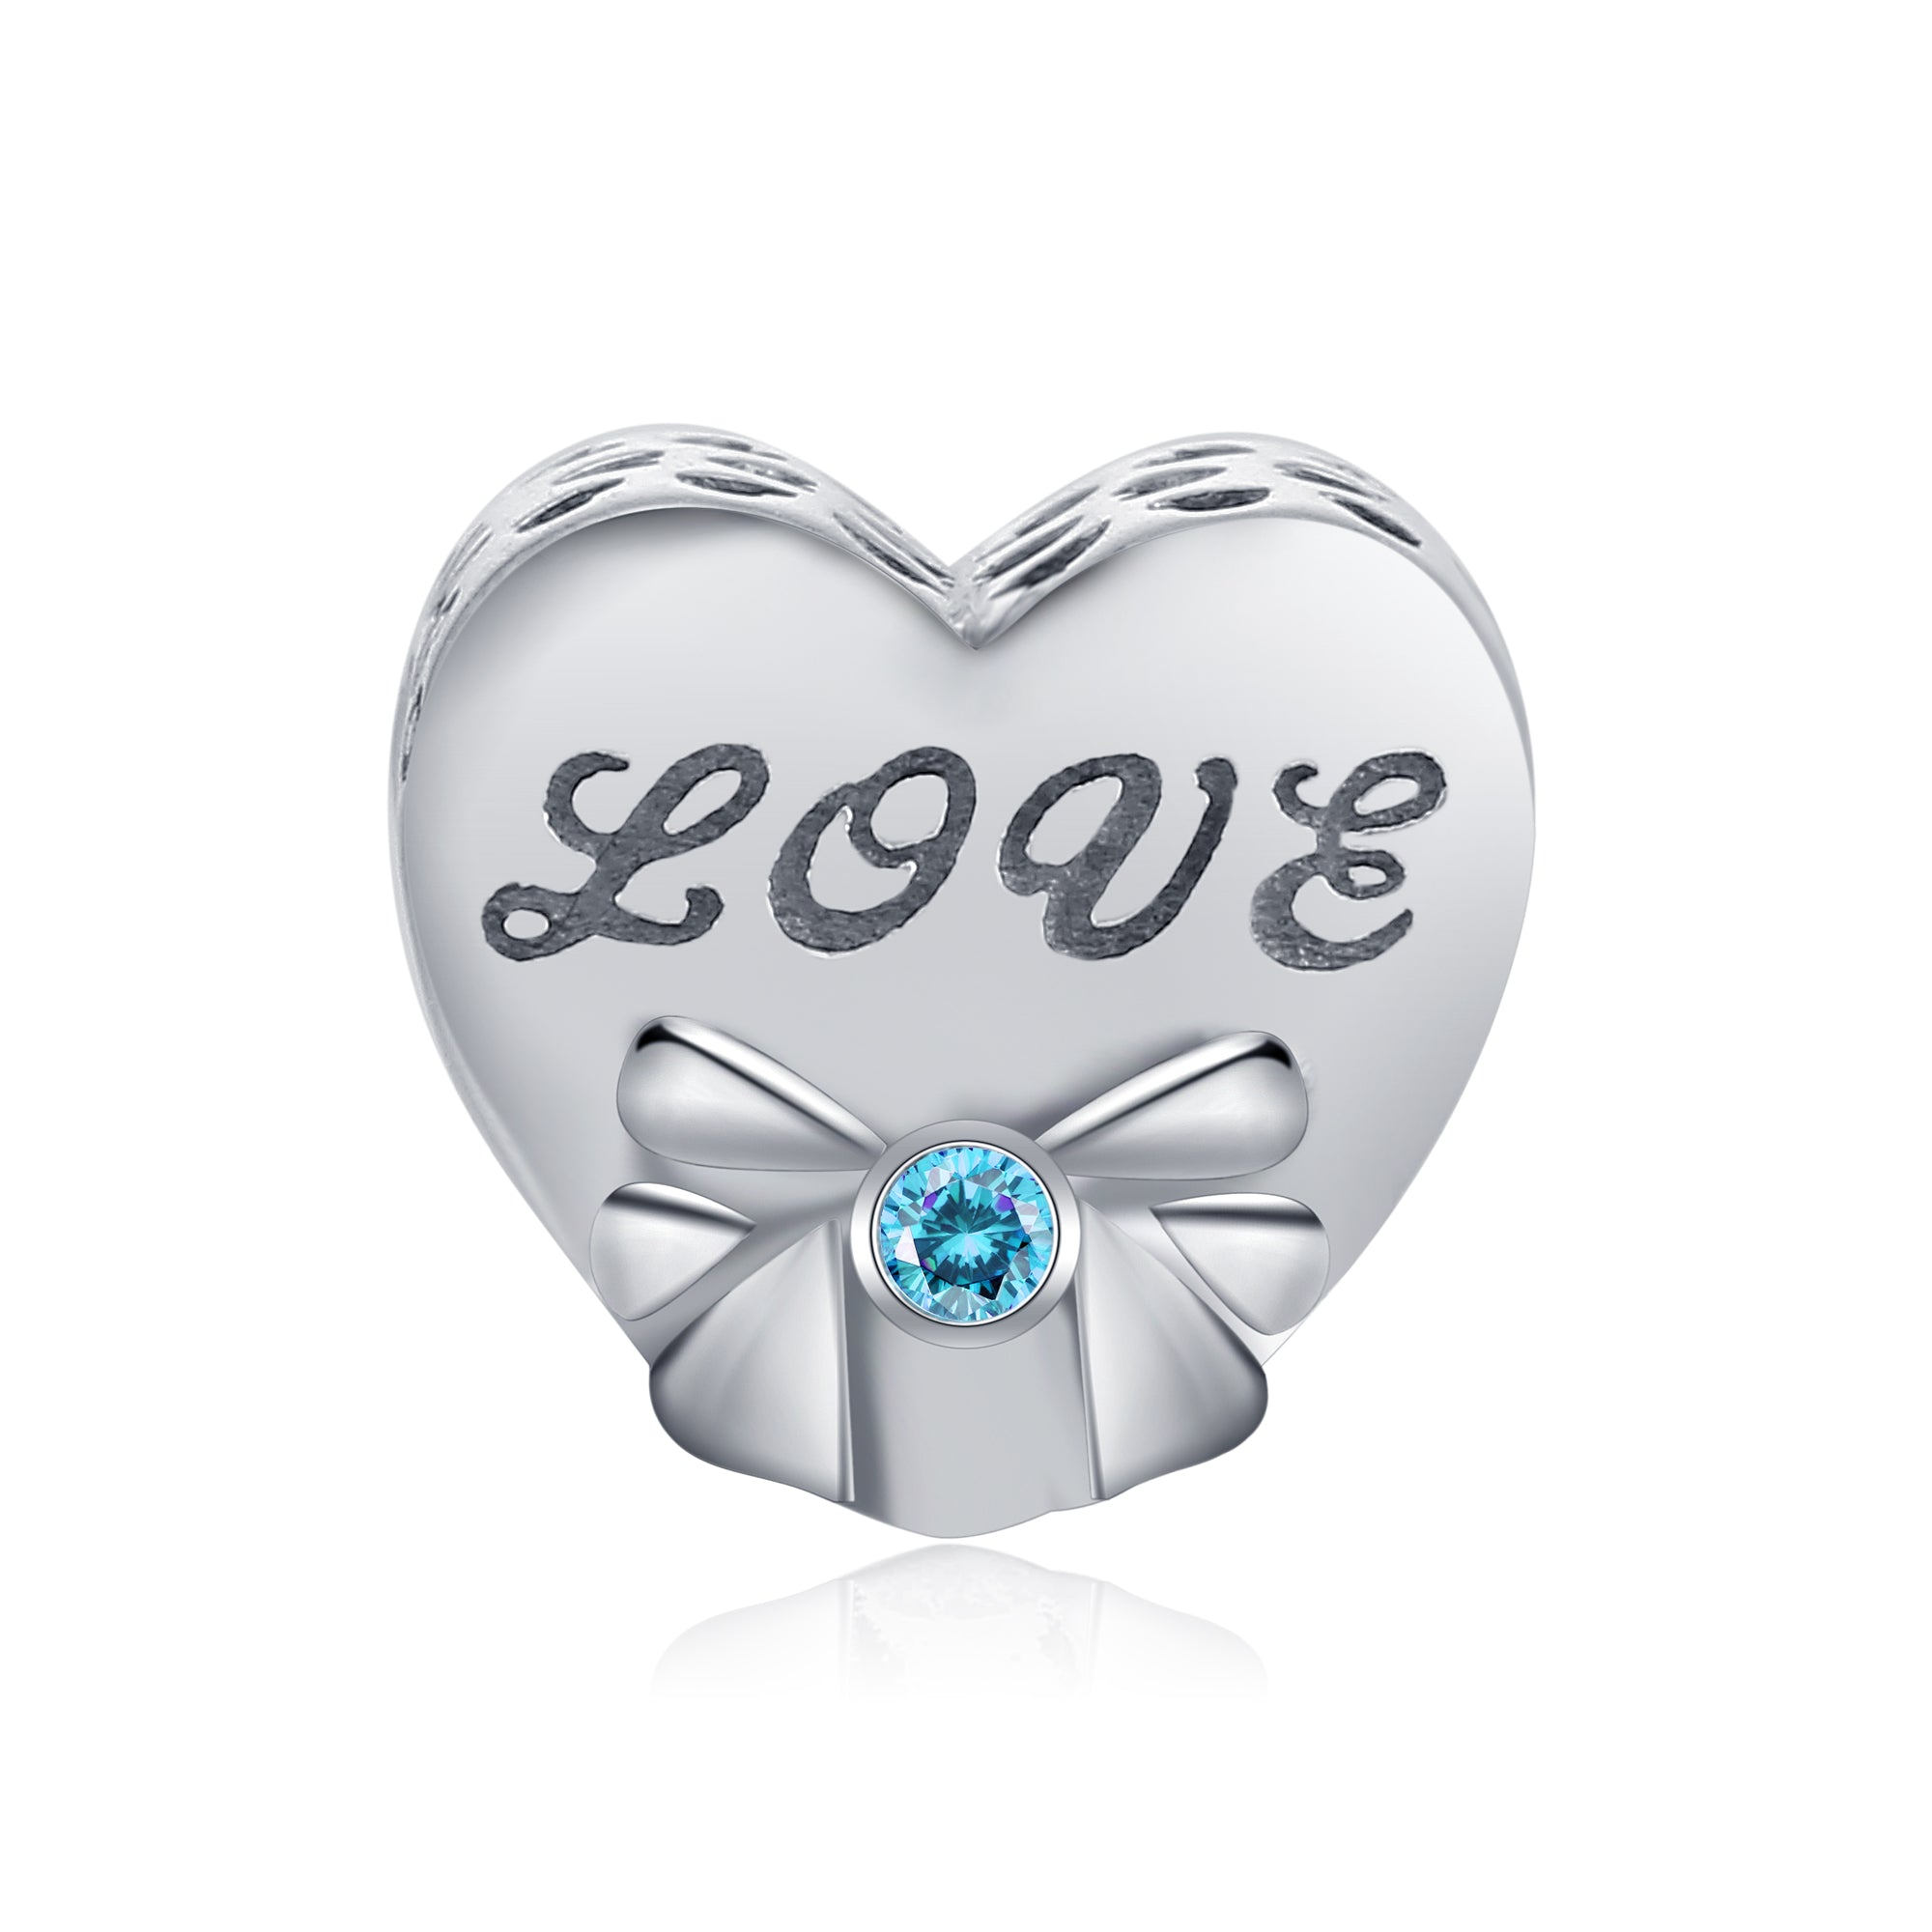 I Love You Charm Love Engraved Heart Shape Jewelry Silver Beads